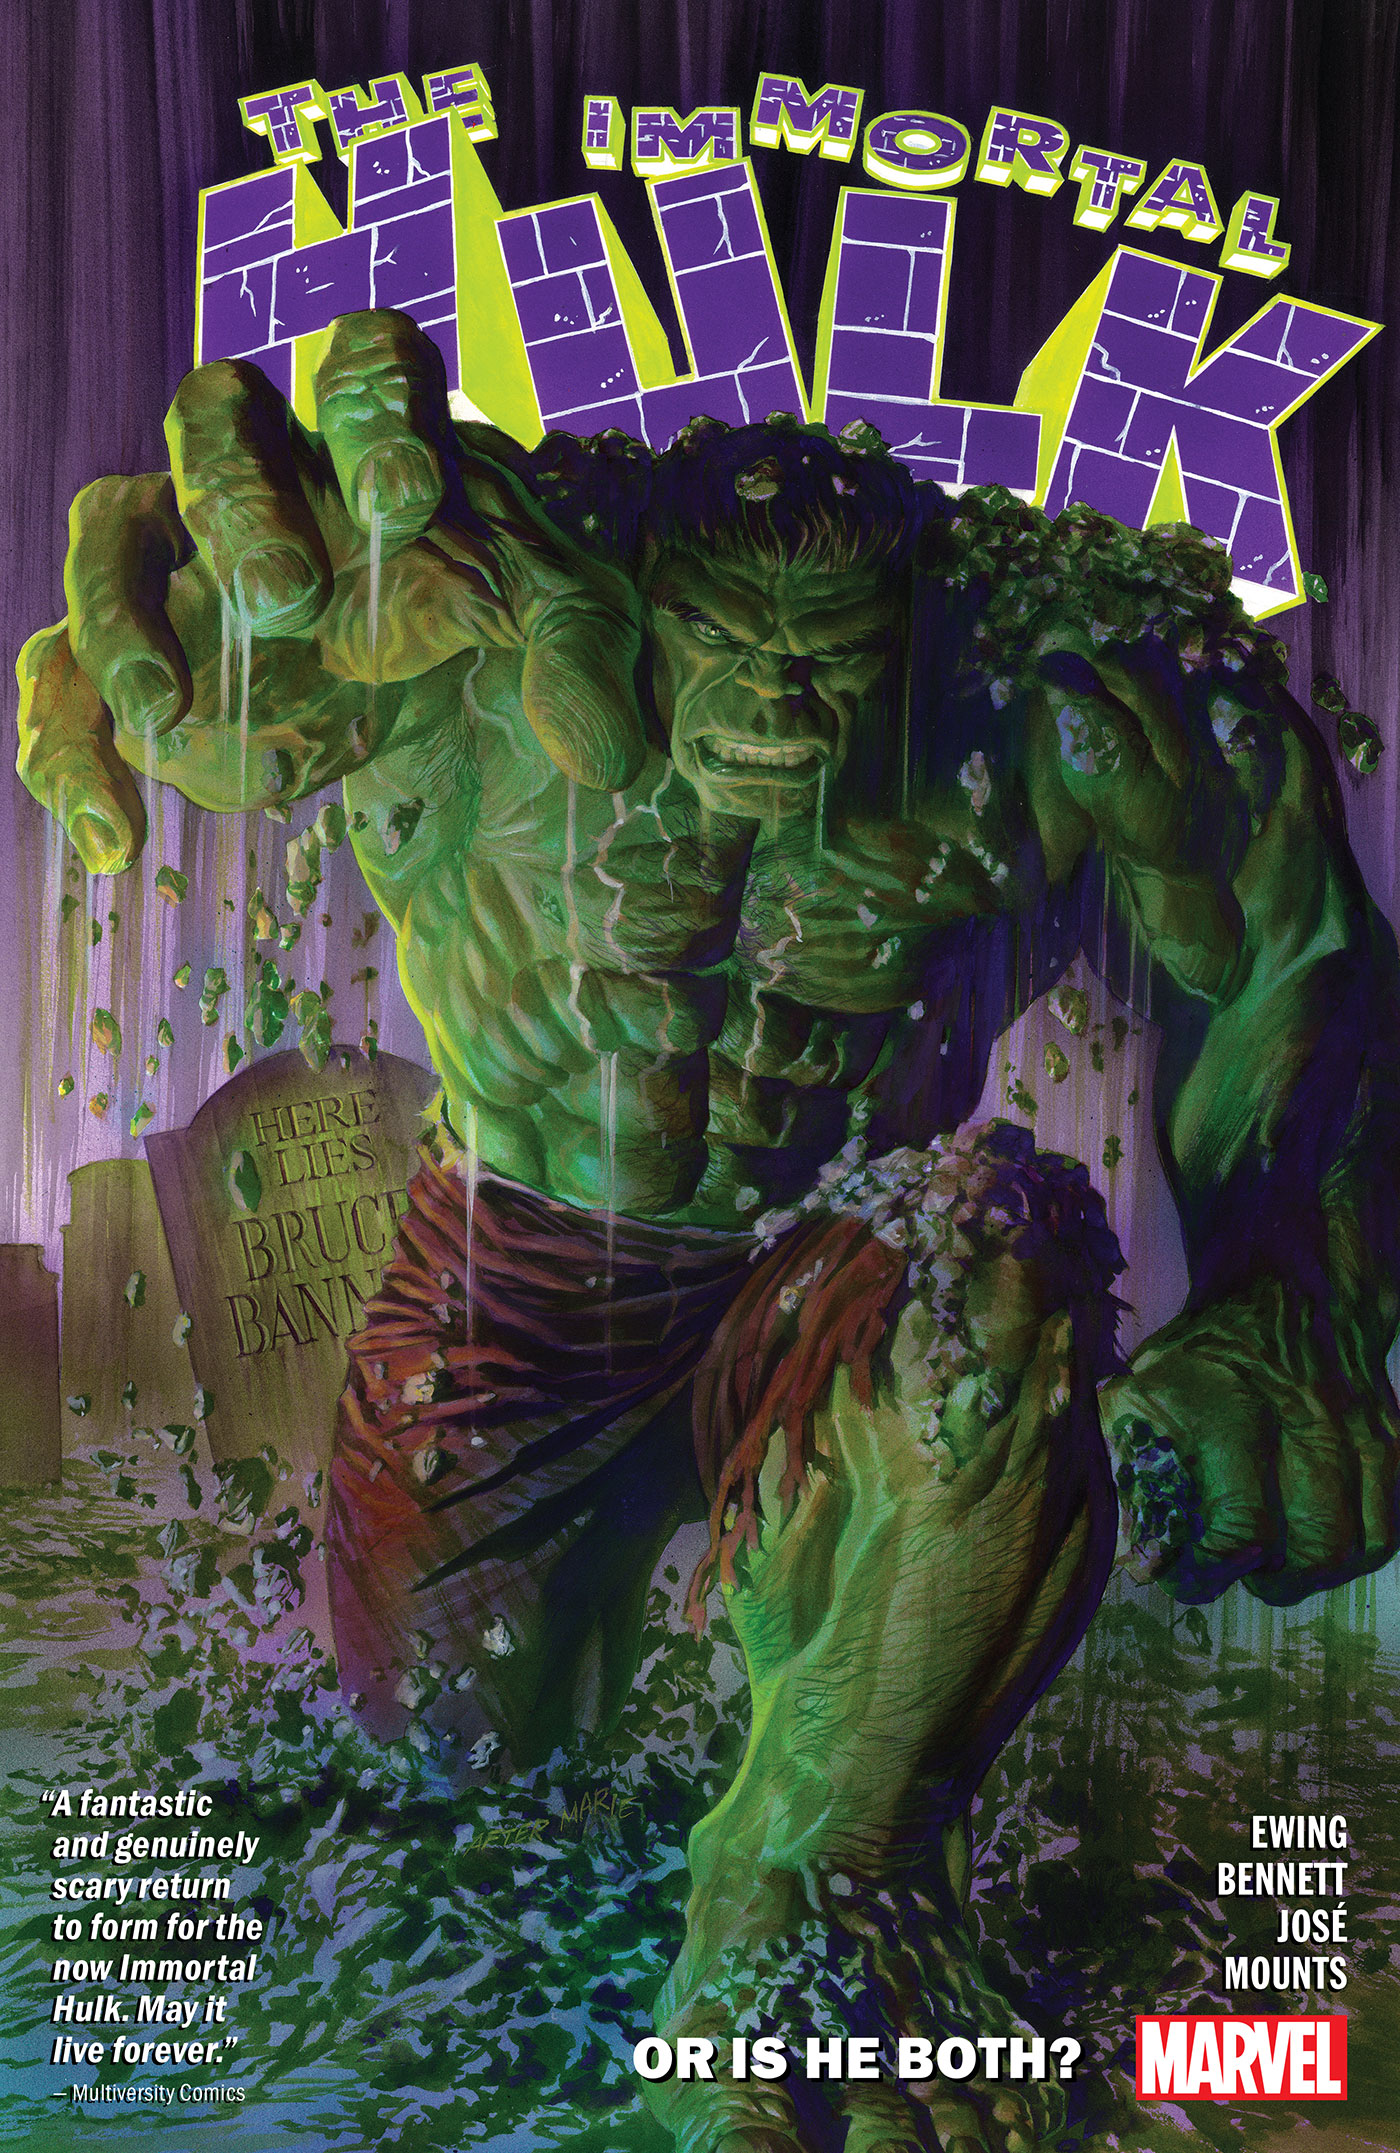 Immortal Hulk Vol. 1 [electronic resource] : Or Is He Both?